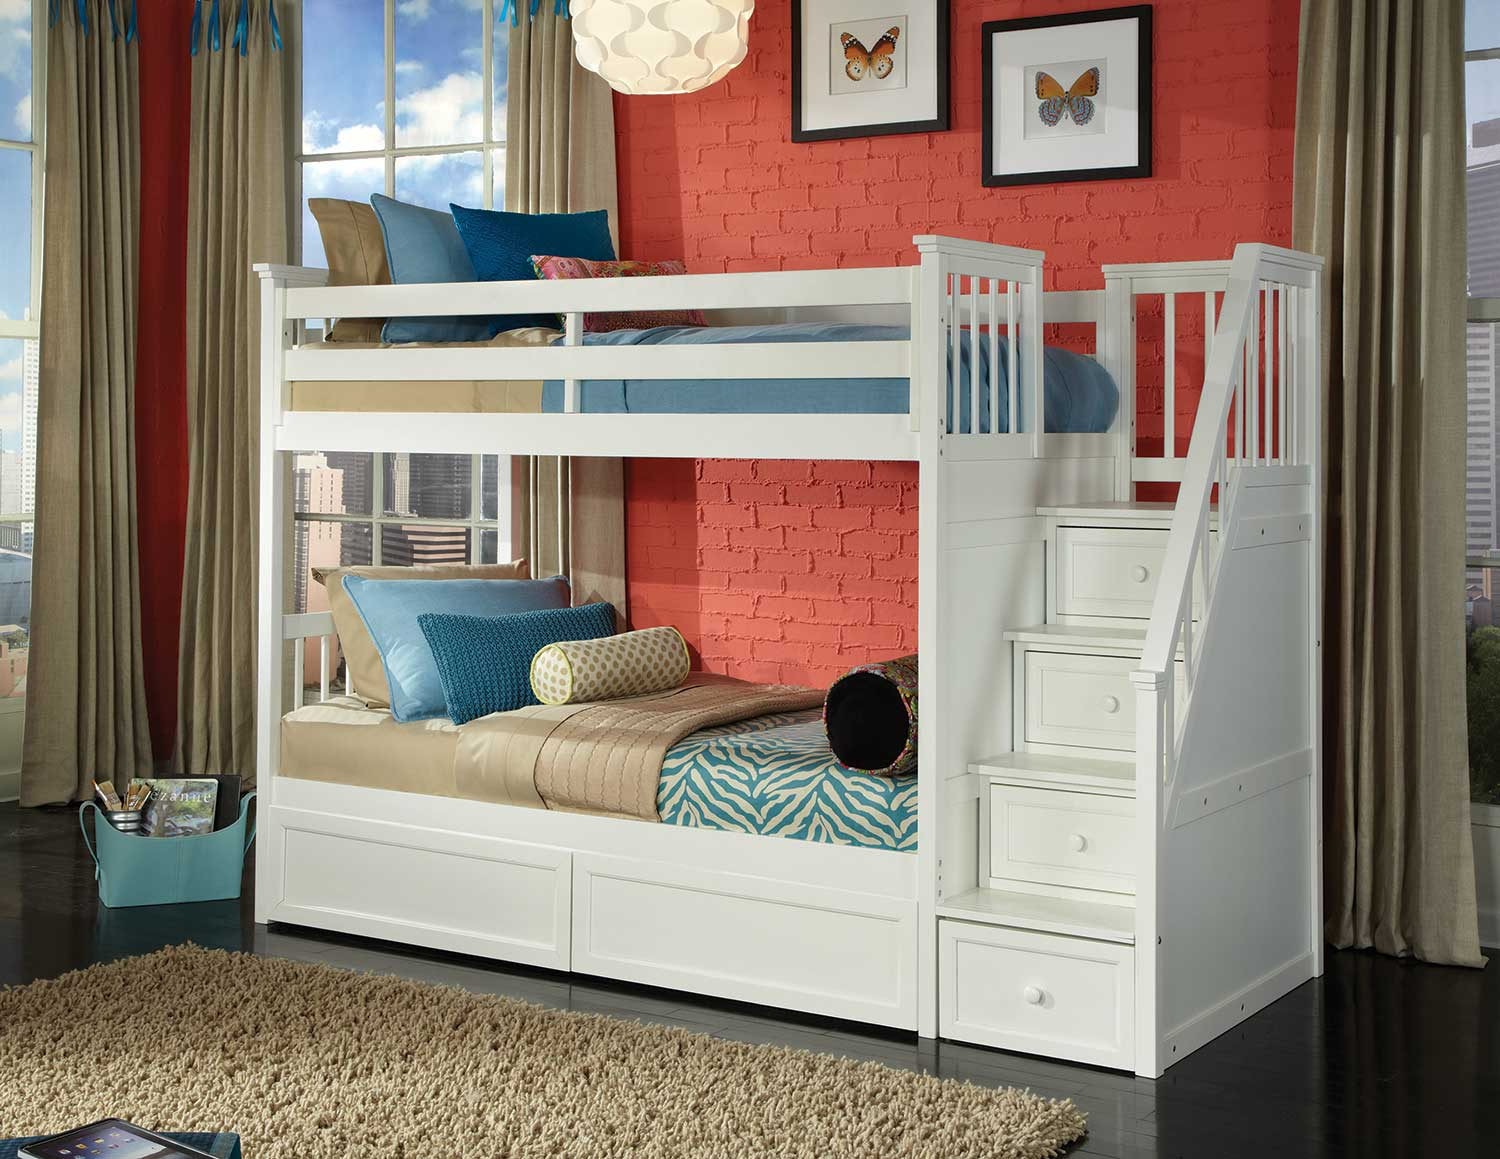 NE Kids School House Stair Bunk Bed with Storage - White Finish